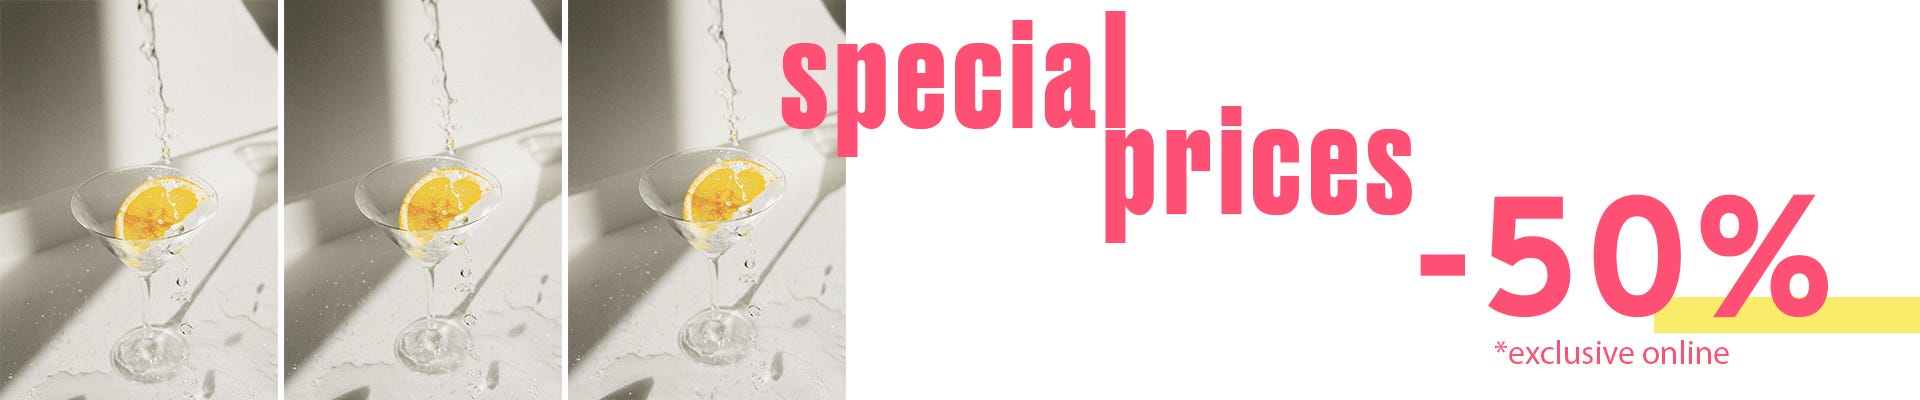 Special prices on selected Misako products